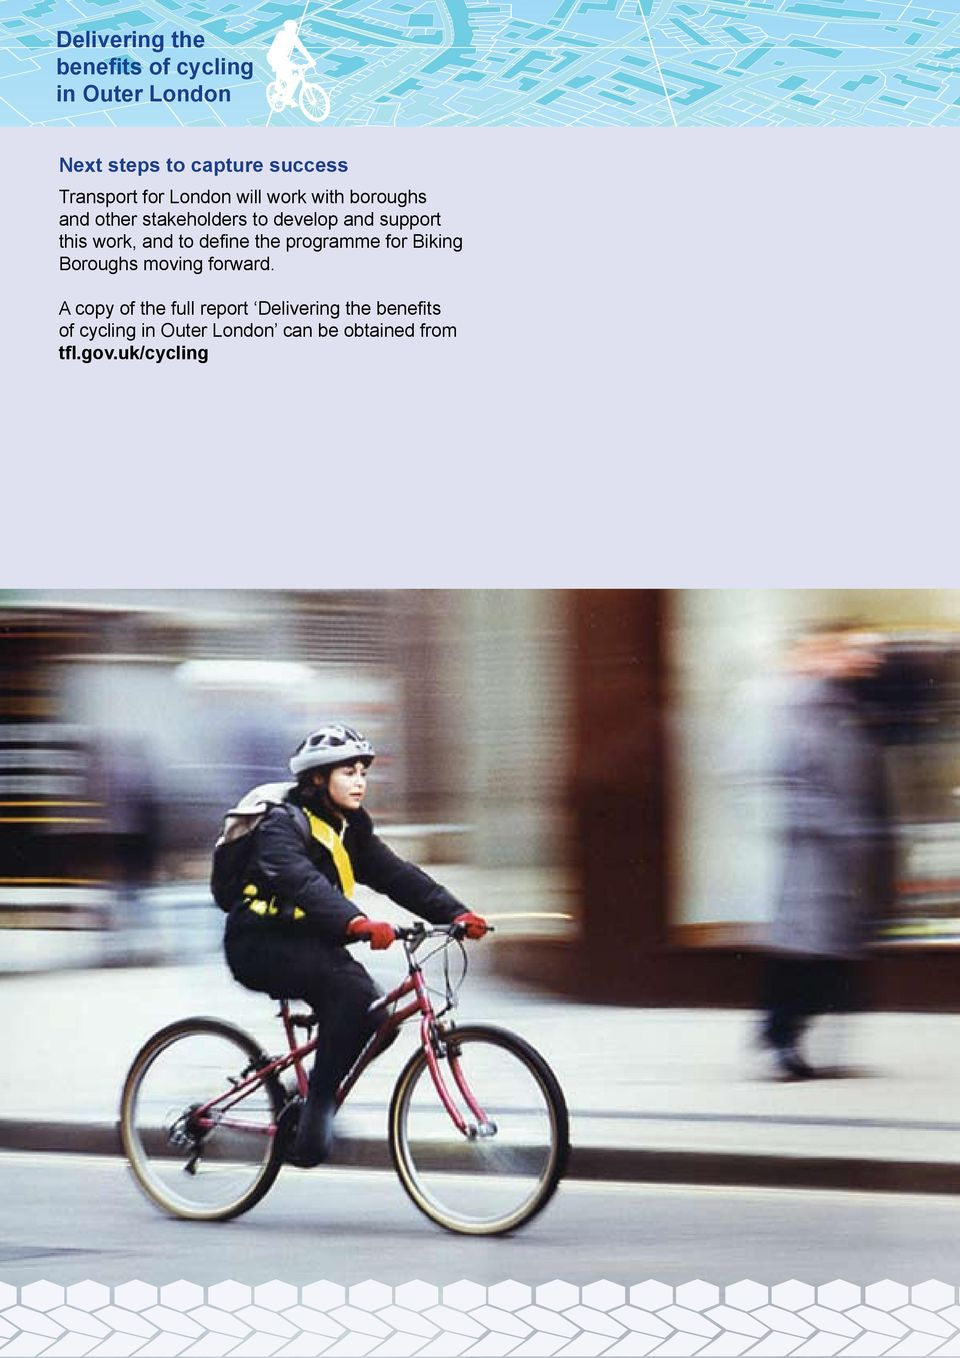 define the programme for Biking Boroughs moving forward.